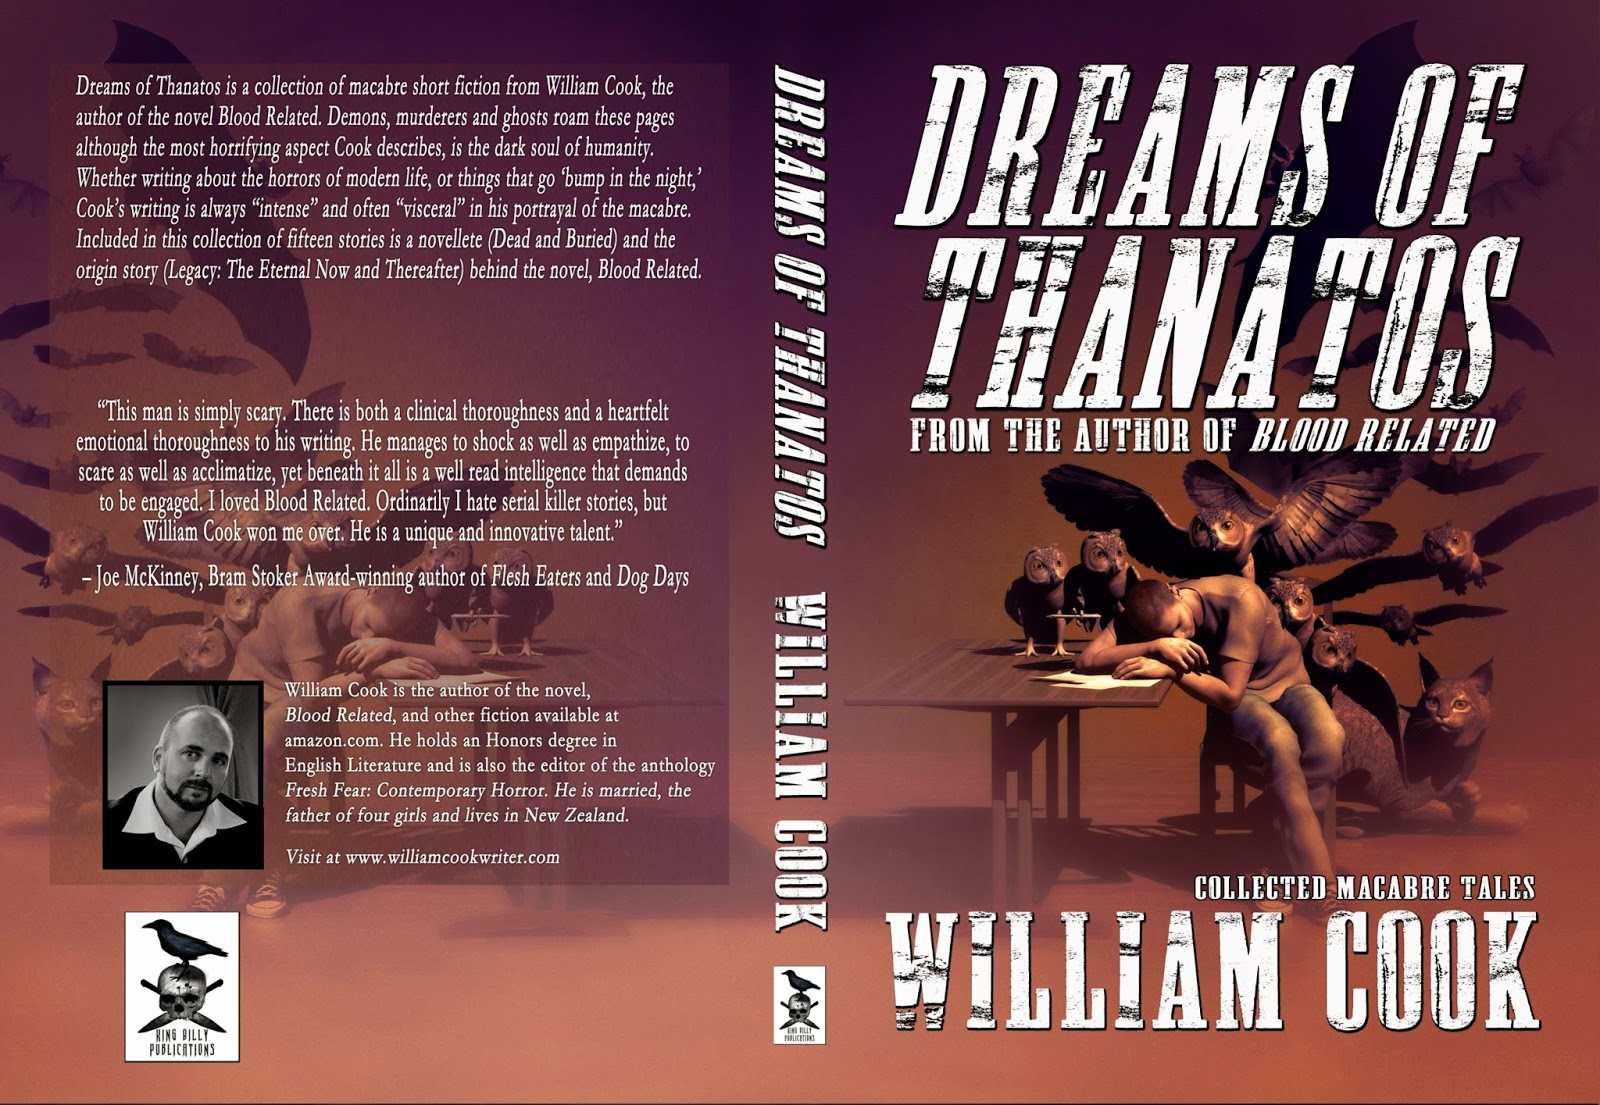 http://www.amazon.com/Dreams-Thanatos-Collected-Macabre-Collection-ebook/dp/B00IINDTVI/ref=la_B003PA513I_1_4?s=books&ie=UTF8&qid=1421710458&sr=1-4